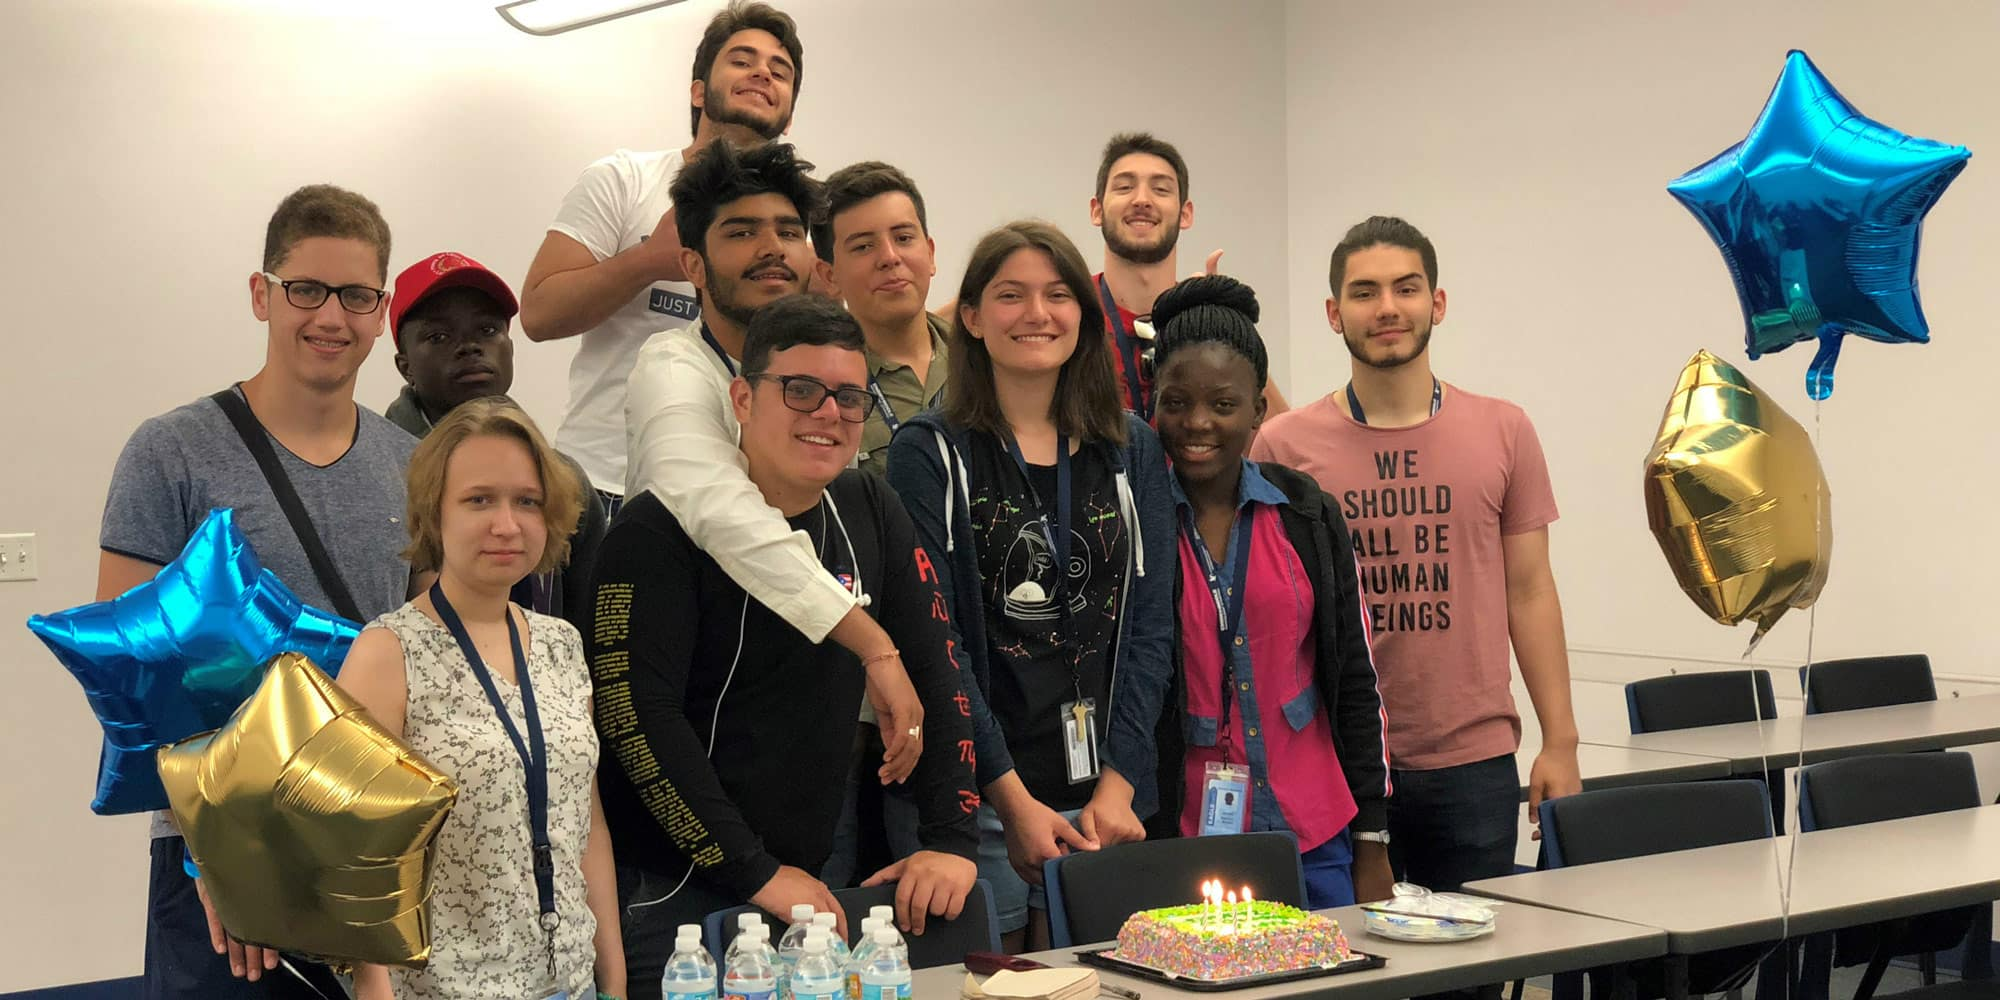 students celebrating a birthday